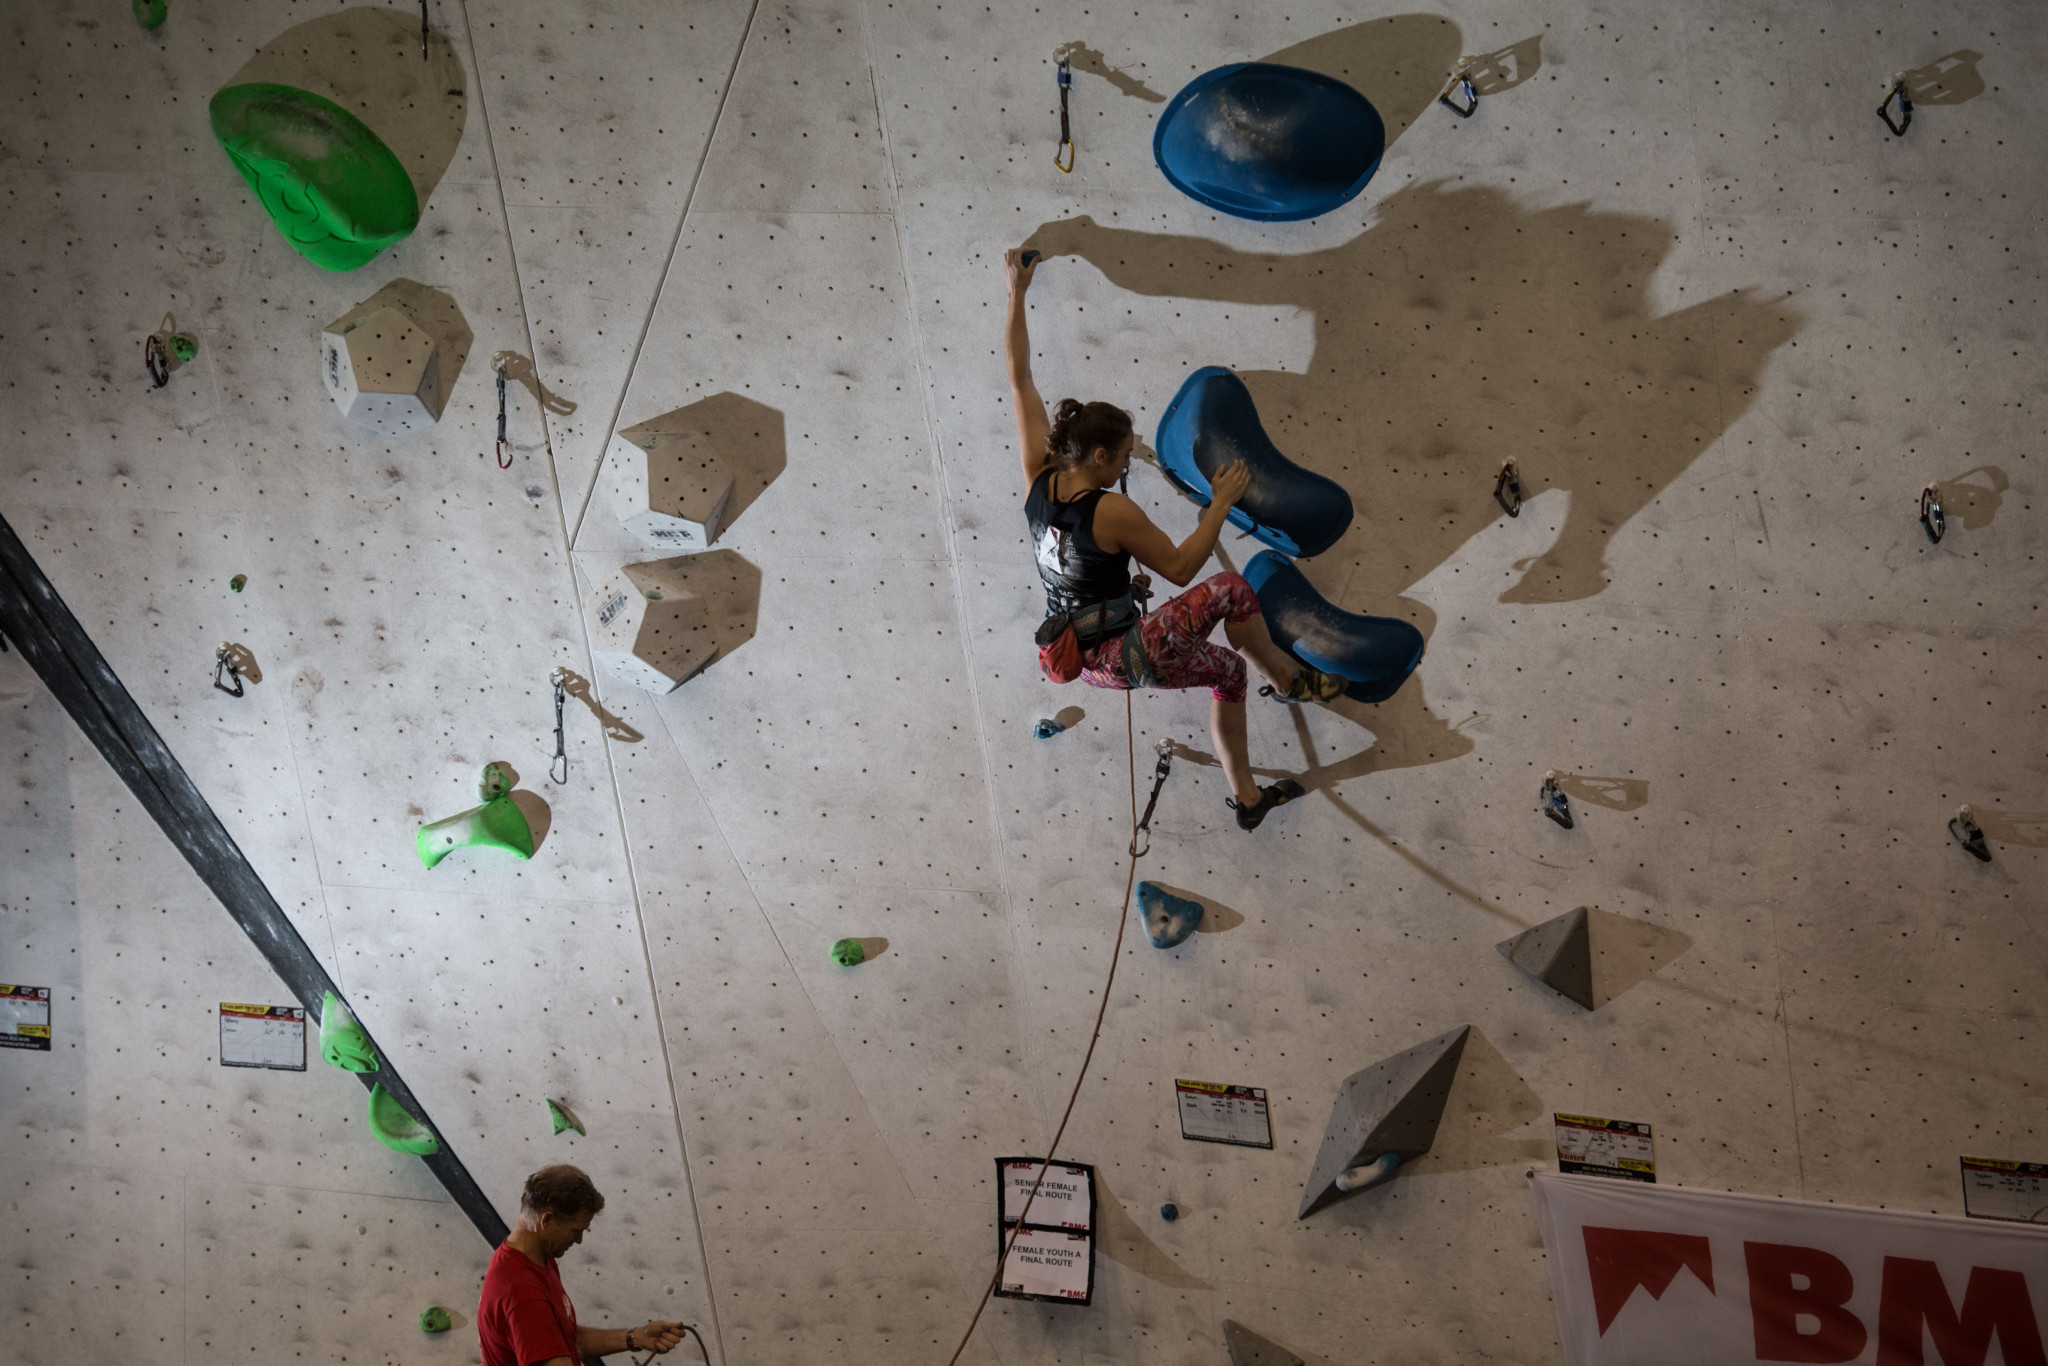 Sport climbing will make its Olympic debut at Tokyo 2020 ©Getty Images